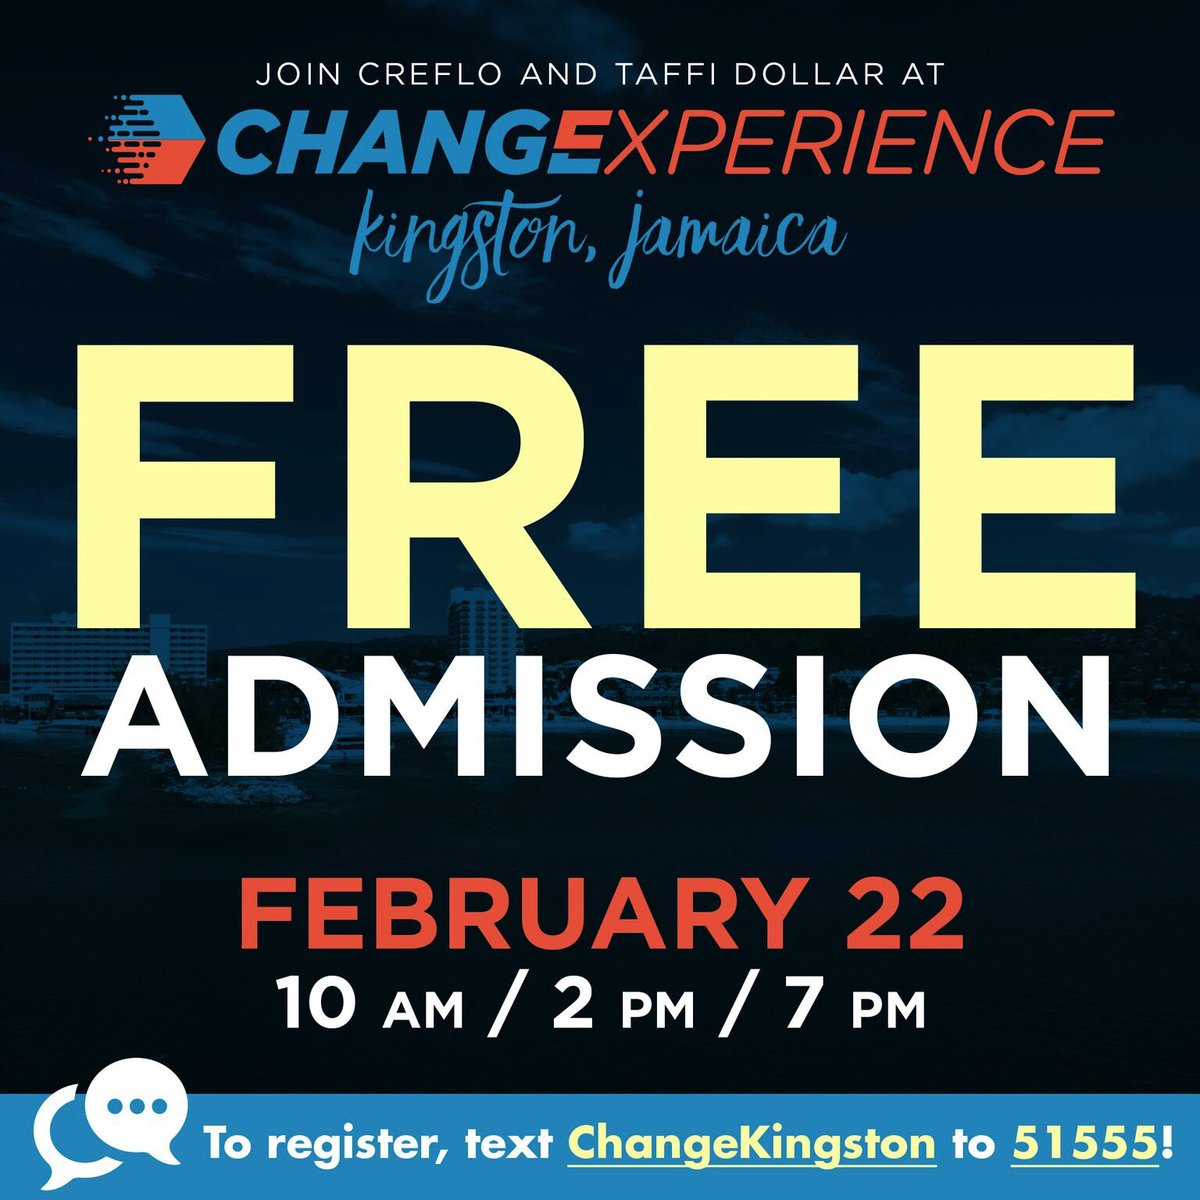 Kingston, Jamaica get ready for Change Experience 2019, Friday, February 22. Join us for three powerful sessions at 10 am, 2pm, and 7 pm. This event is free! But, seating is limited. Register NOW. …https://changeexperience2019kingston.eventbrite.com  #ChangeExperience2019 #WorldChangersChurchInternational